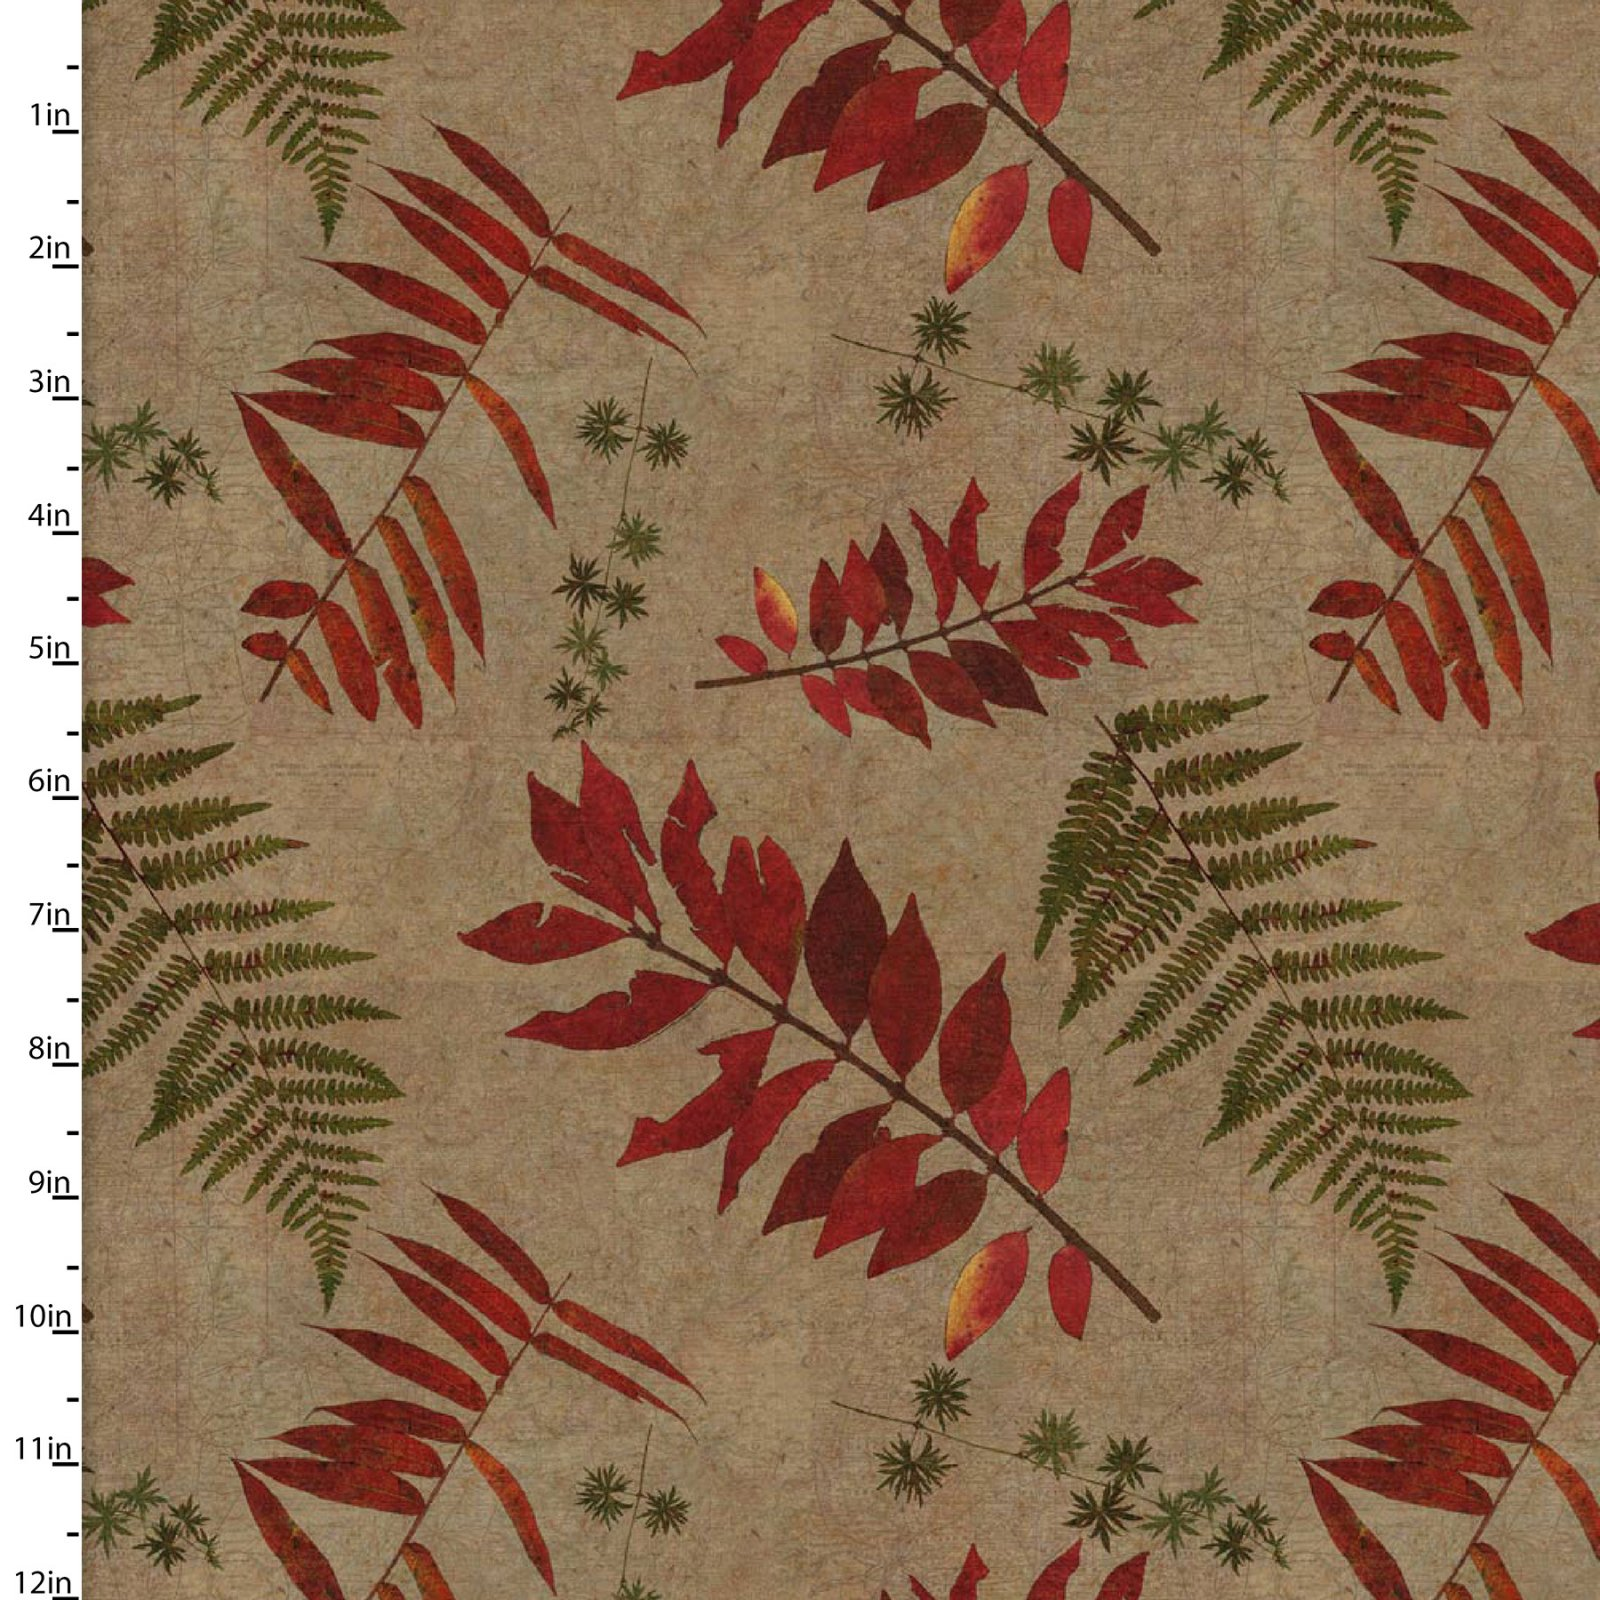 3 Wishes Rustic Roosters Digital 13852-Tan palm and leaf fronds